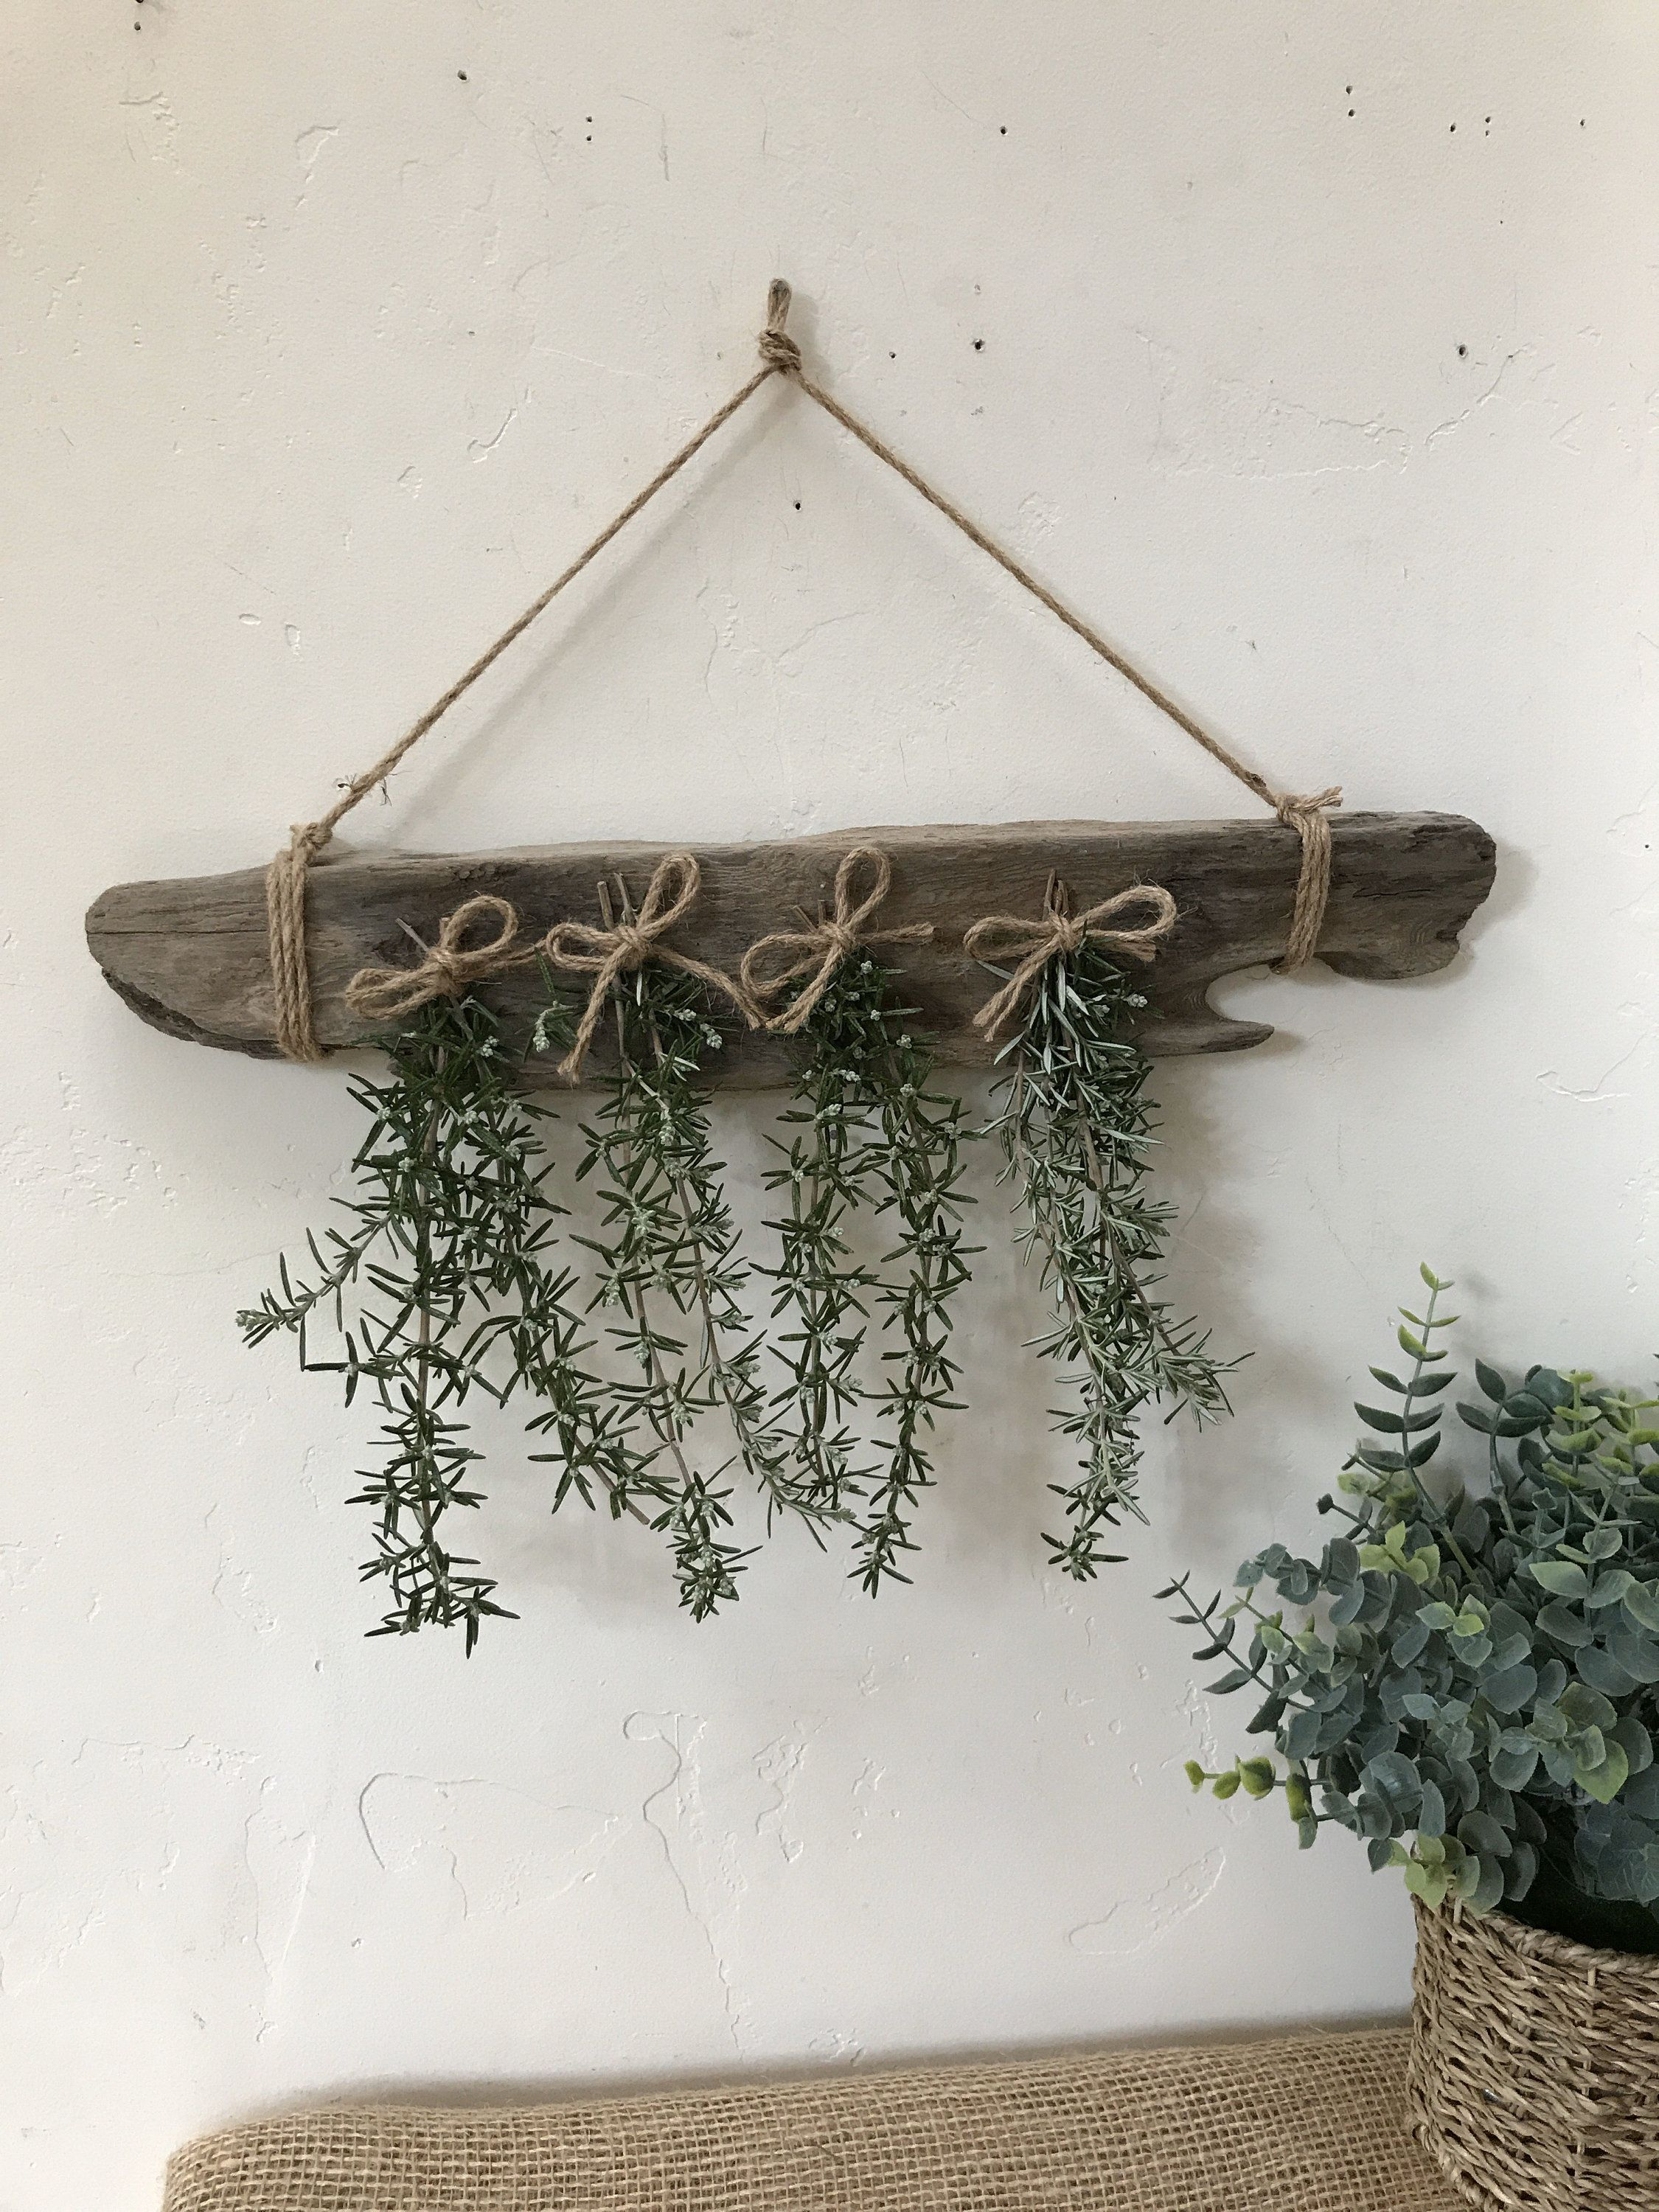 Driftwood Re Claimed Wood Dried Herbs Or Flowers Hanging Rack Dry Herbs Rustic Cabin Farmhouse Look In 2020 Dried Flowers Coastal Decor Comfortable Patio Furniture